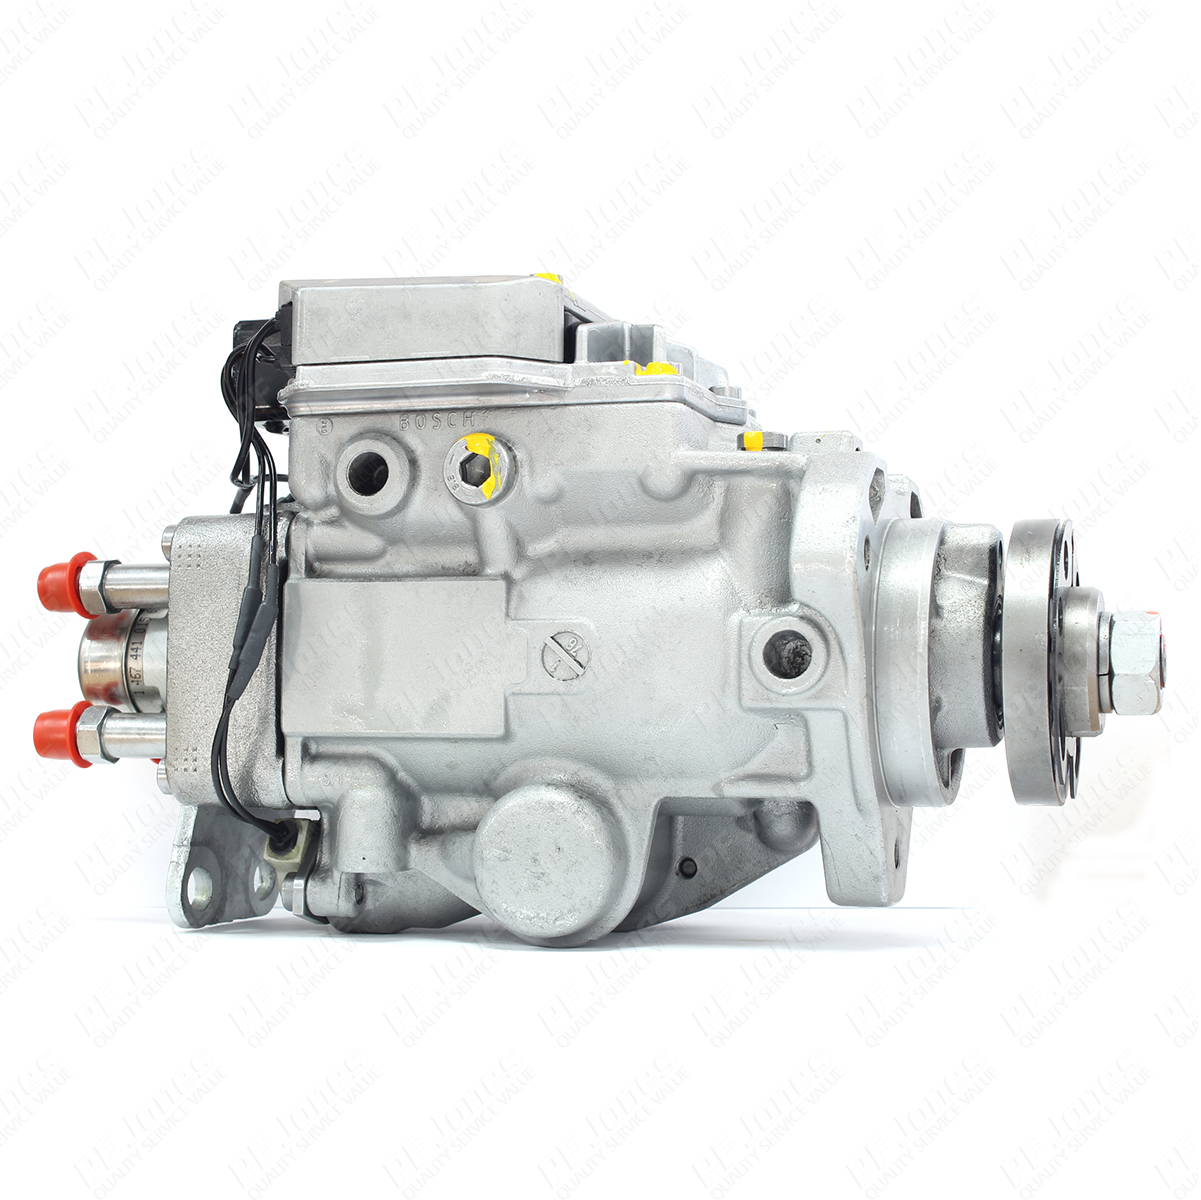 Ford Transit 2.0/2.4 TD/TDI/TDE 2000-2006 Reconditioned Bosch VP30 Diesel Pump 0470004012